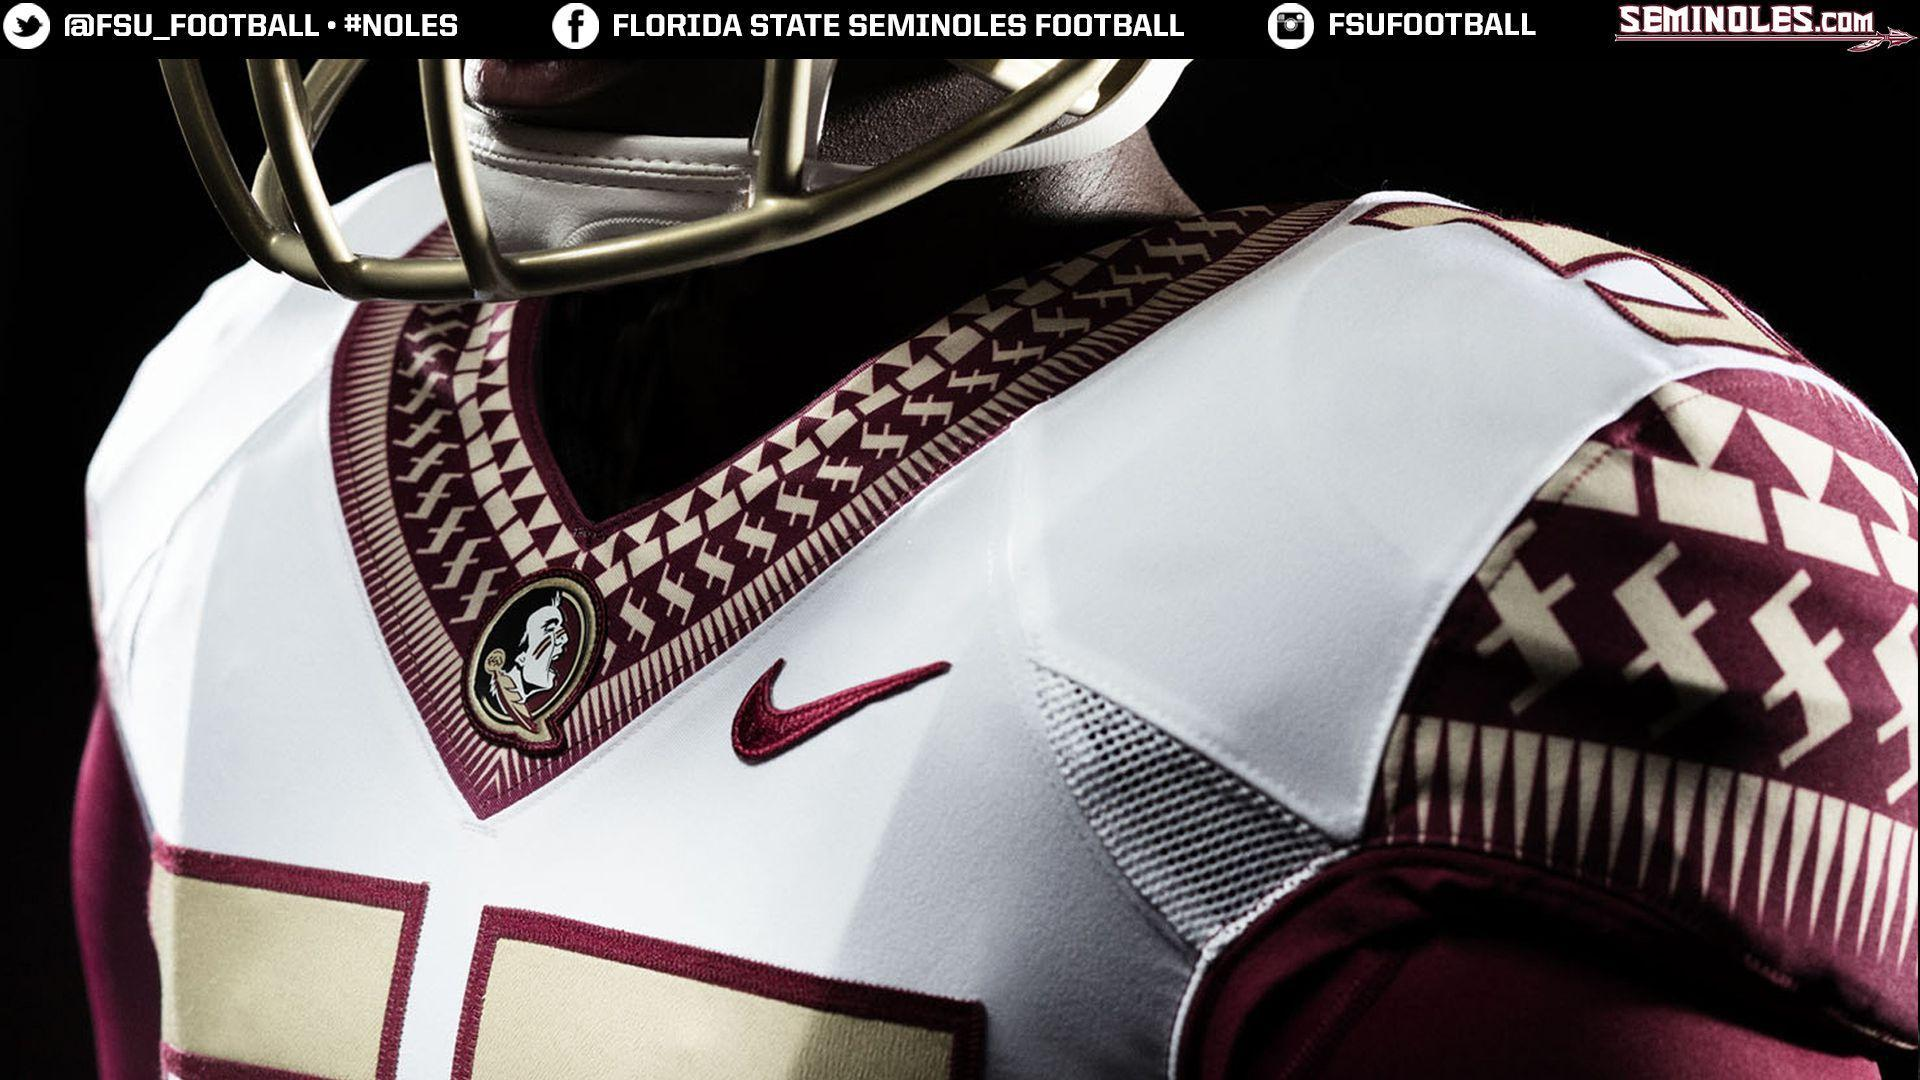 Florida State Seminoles Wallpapers - Wallpaper Cave | 1920 x 1080 jpeg 230kB